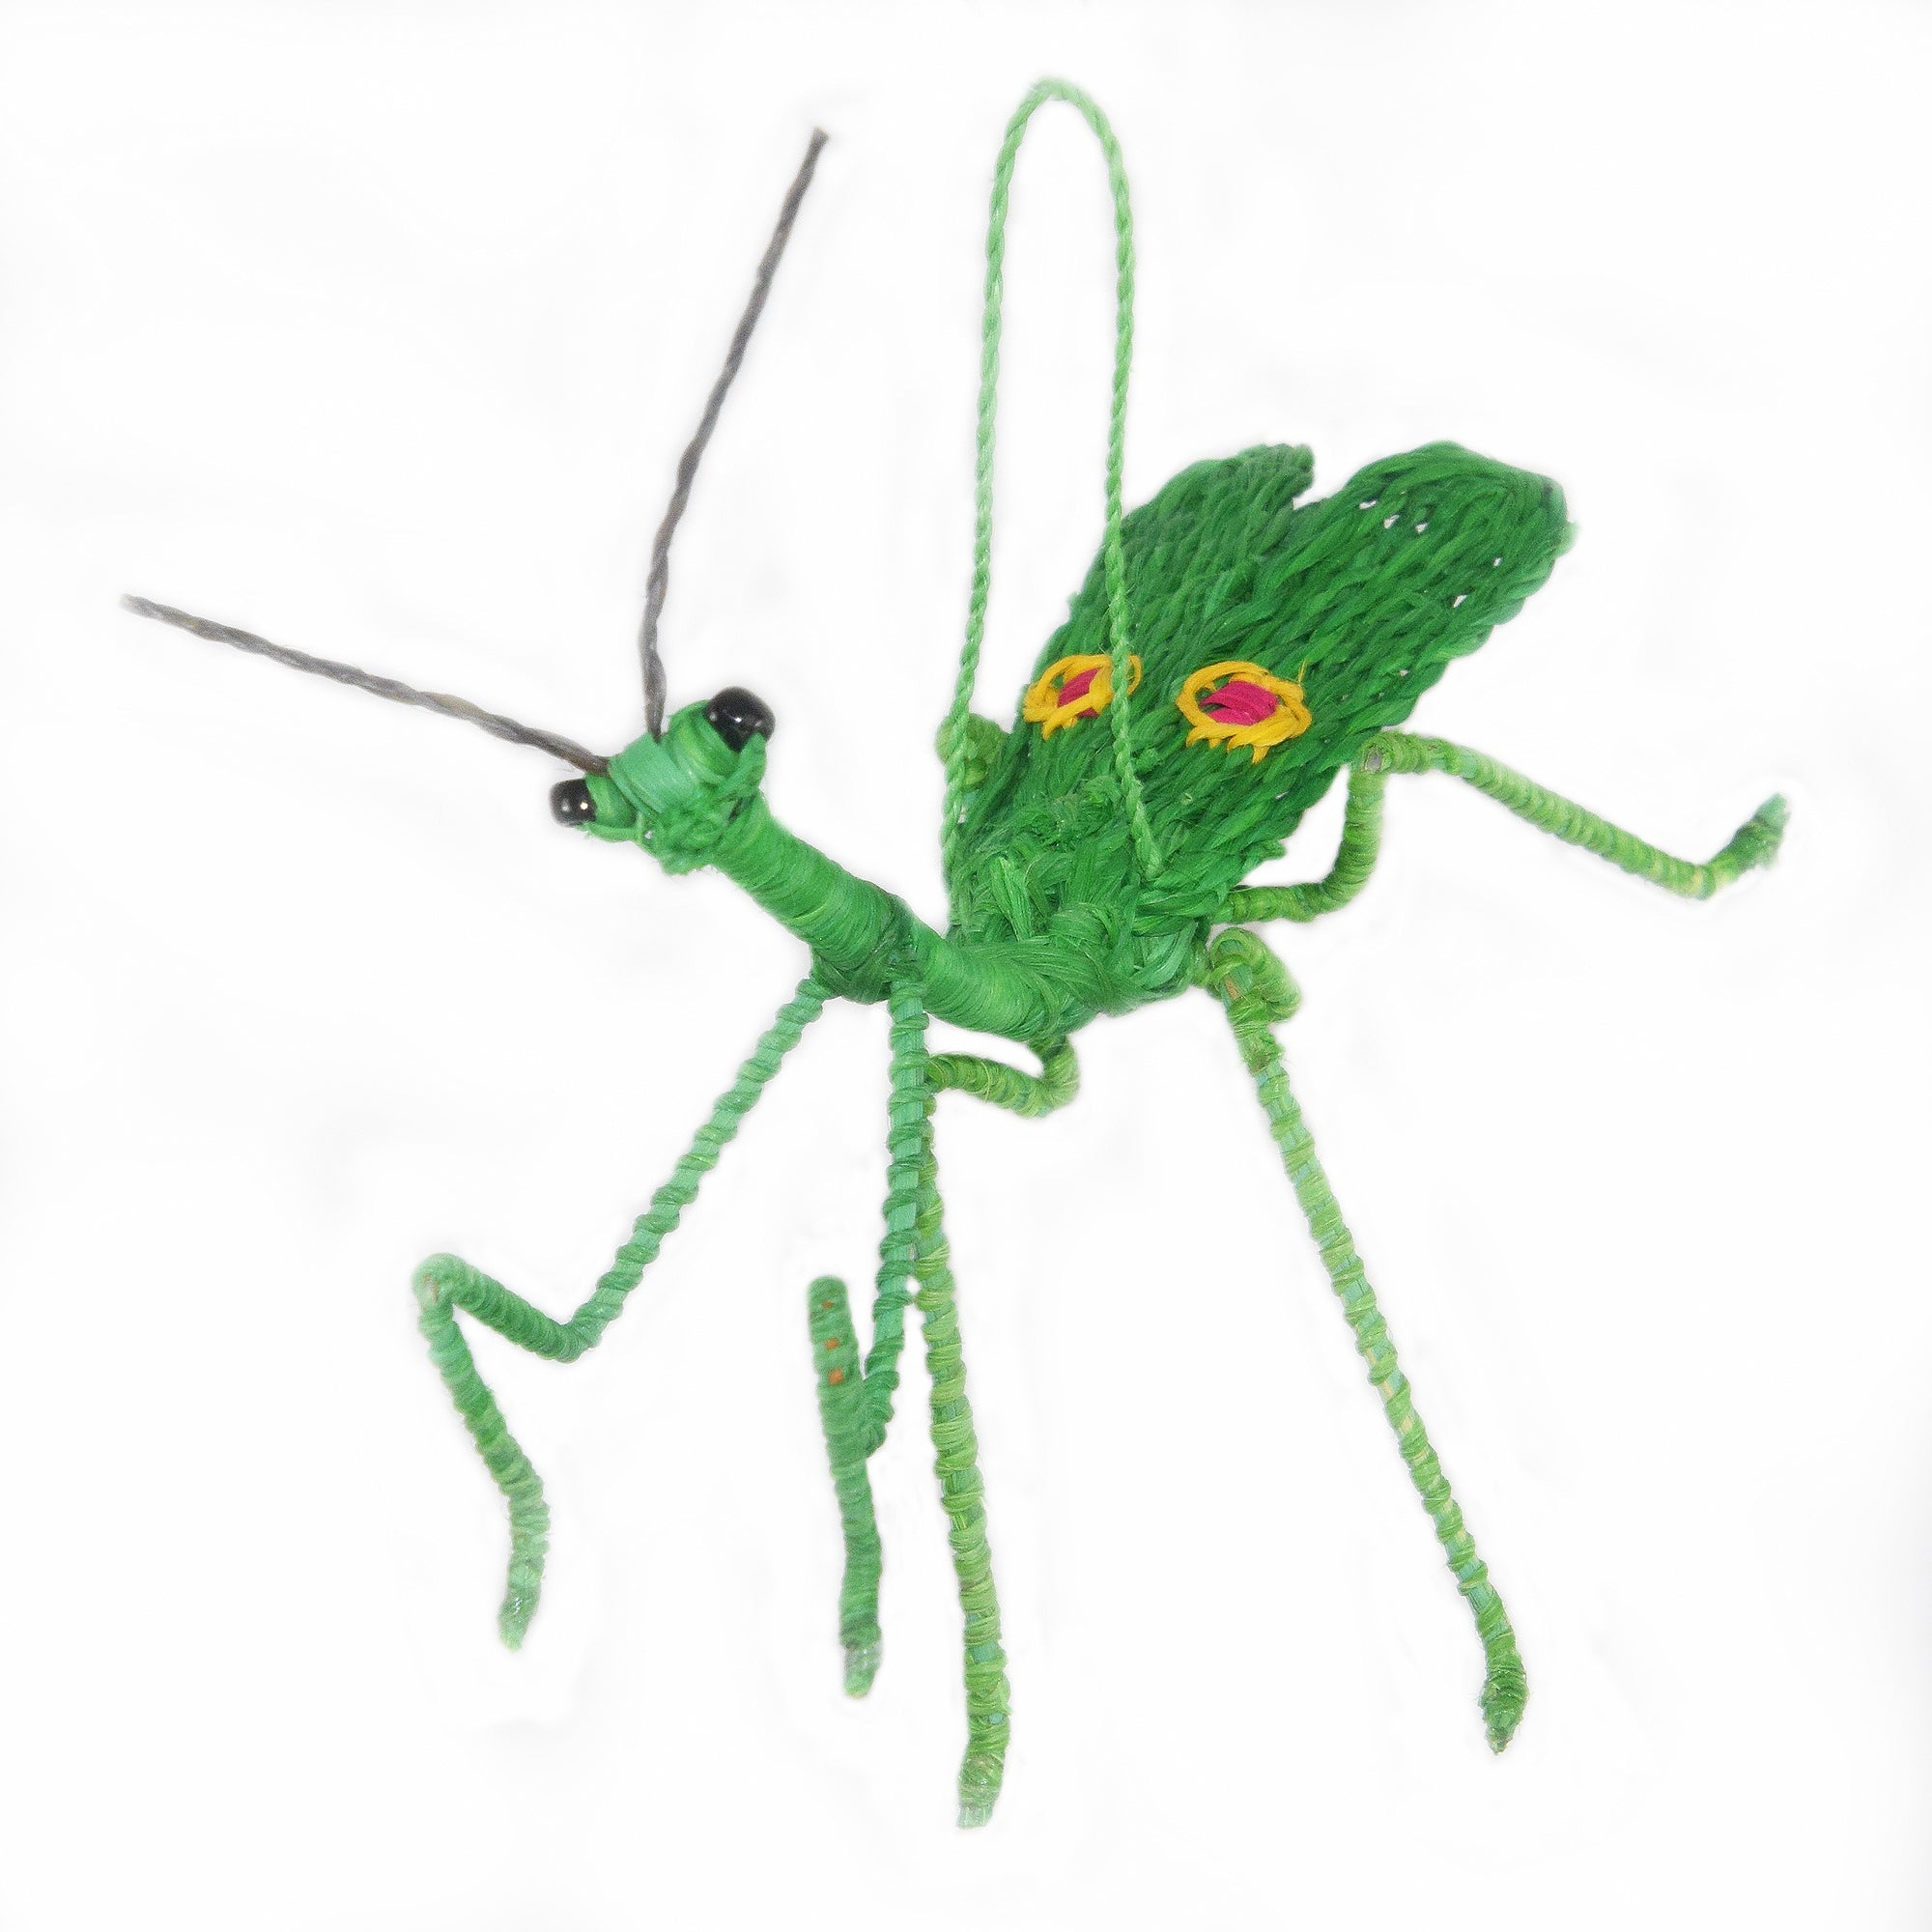 PRAYING MANTIS WOVEN INSECT ORNAMENT - HAND-MADE BY ARTISAN FROM THE PERUVIAN AMAZON